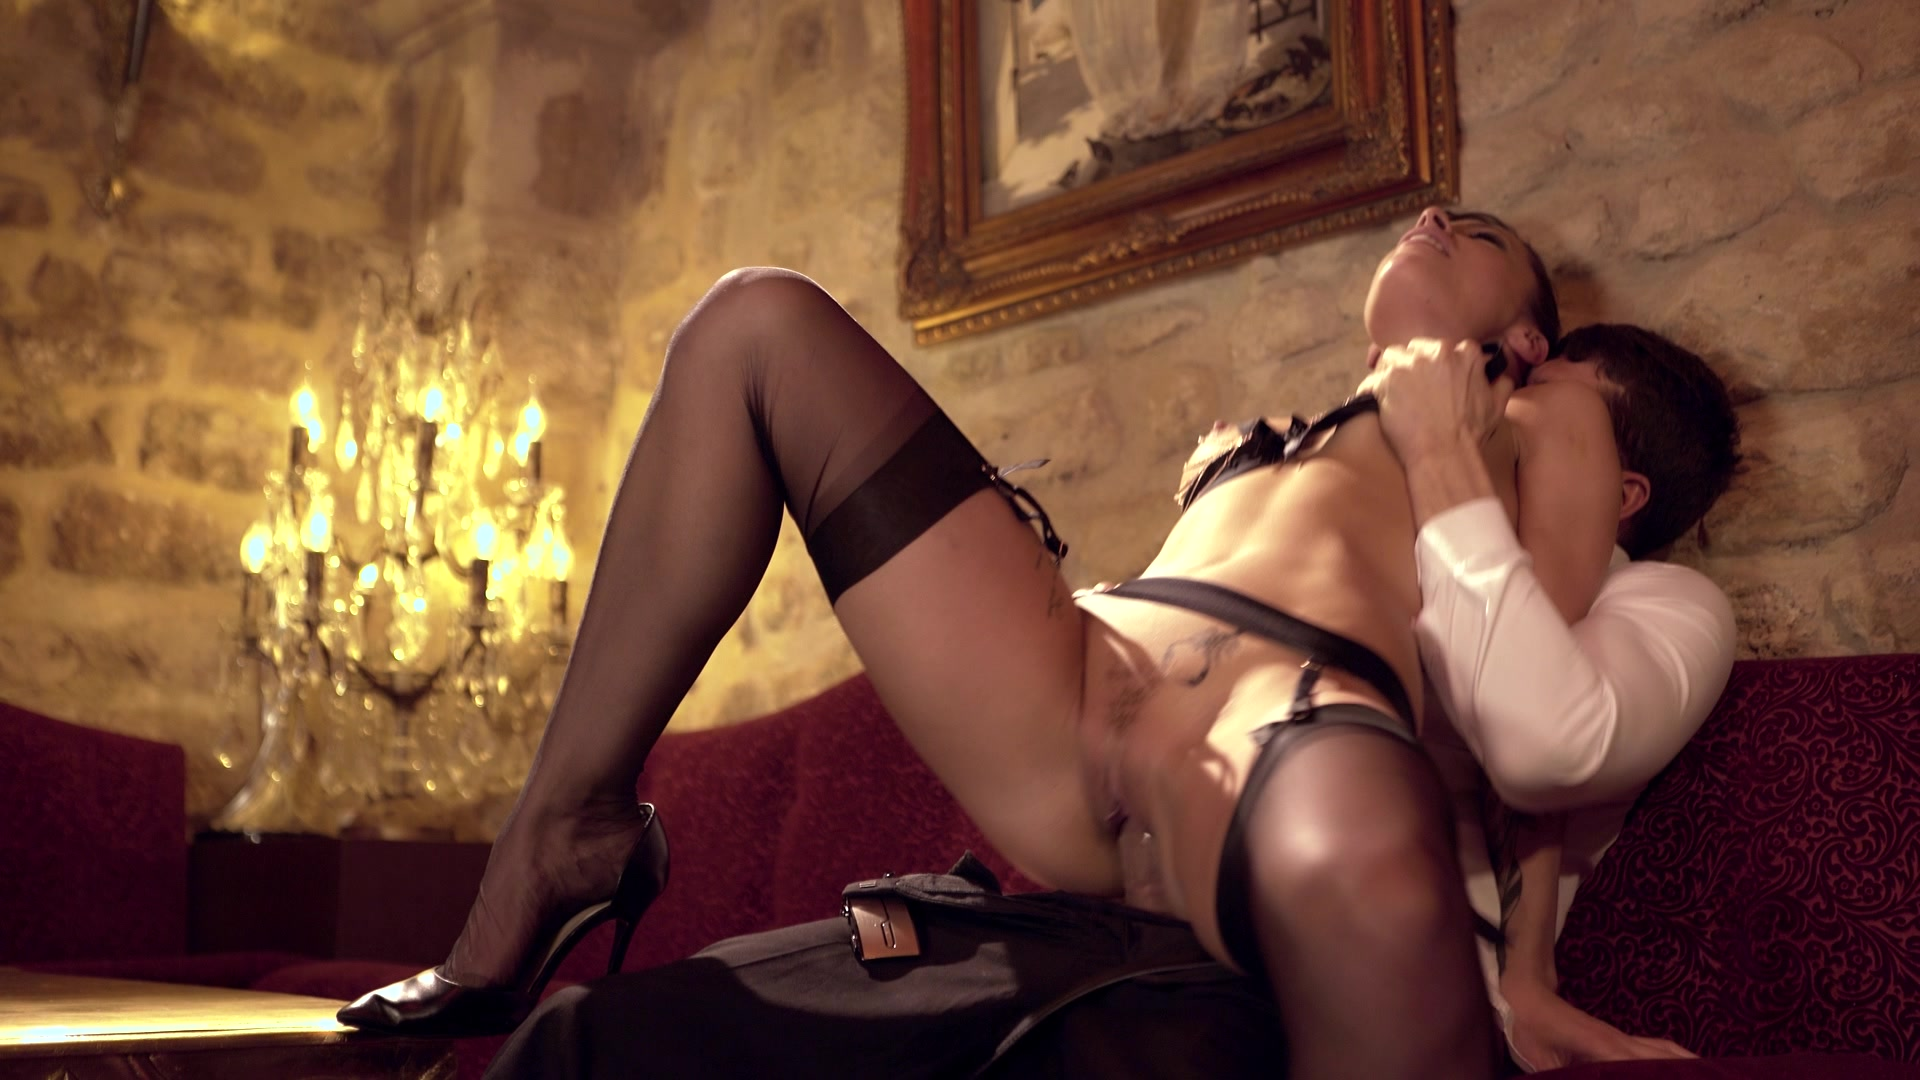 Scene with Nikita Belluci - image 9 out of 20